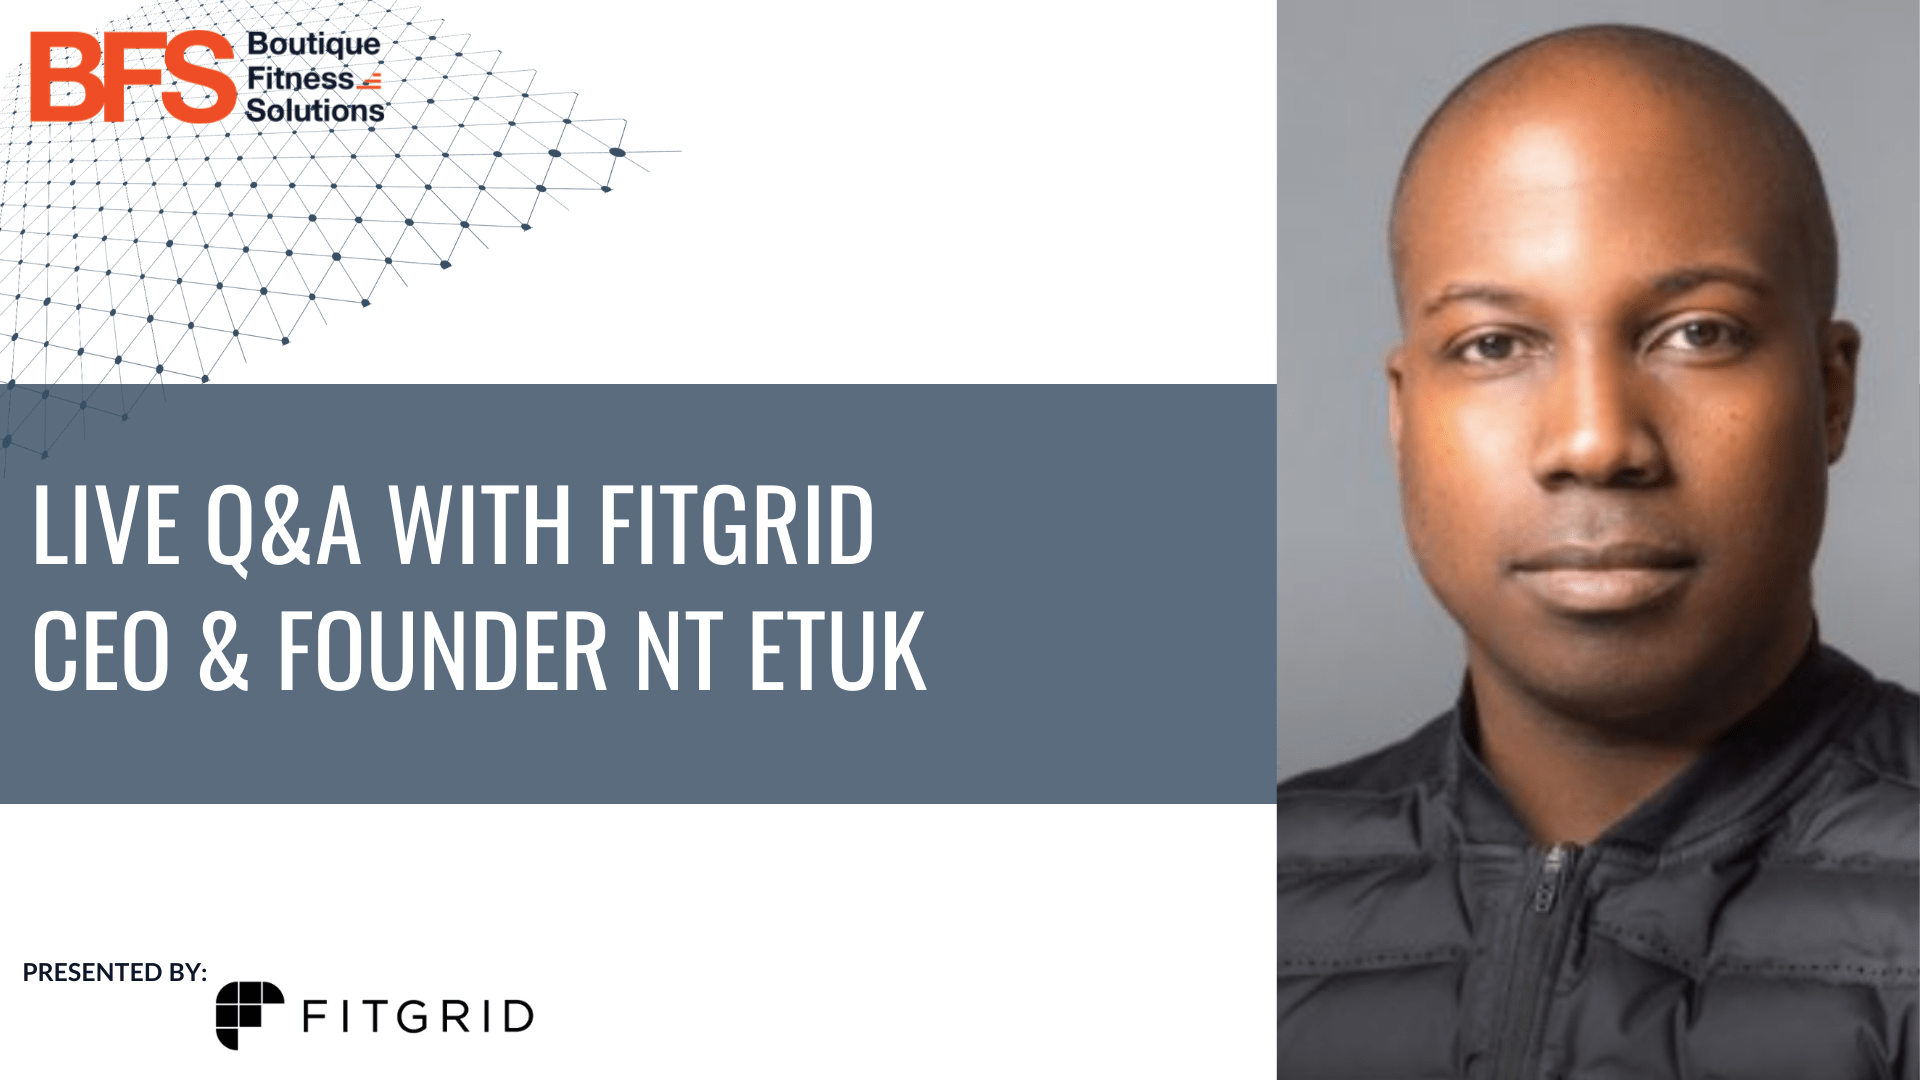 Live Q&A with FitGrid CEO & Founder Nt Etuk